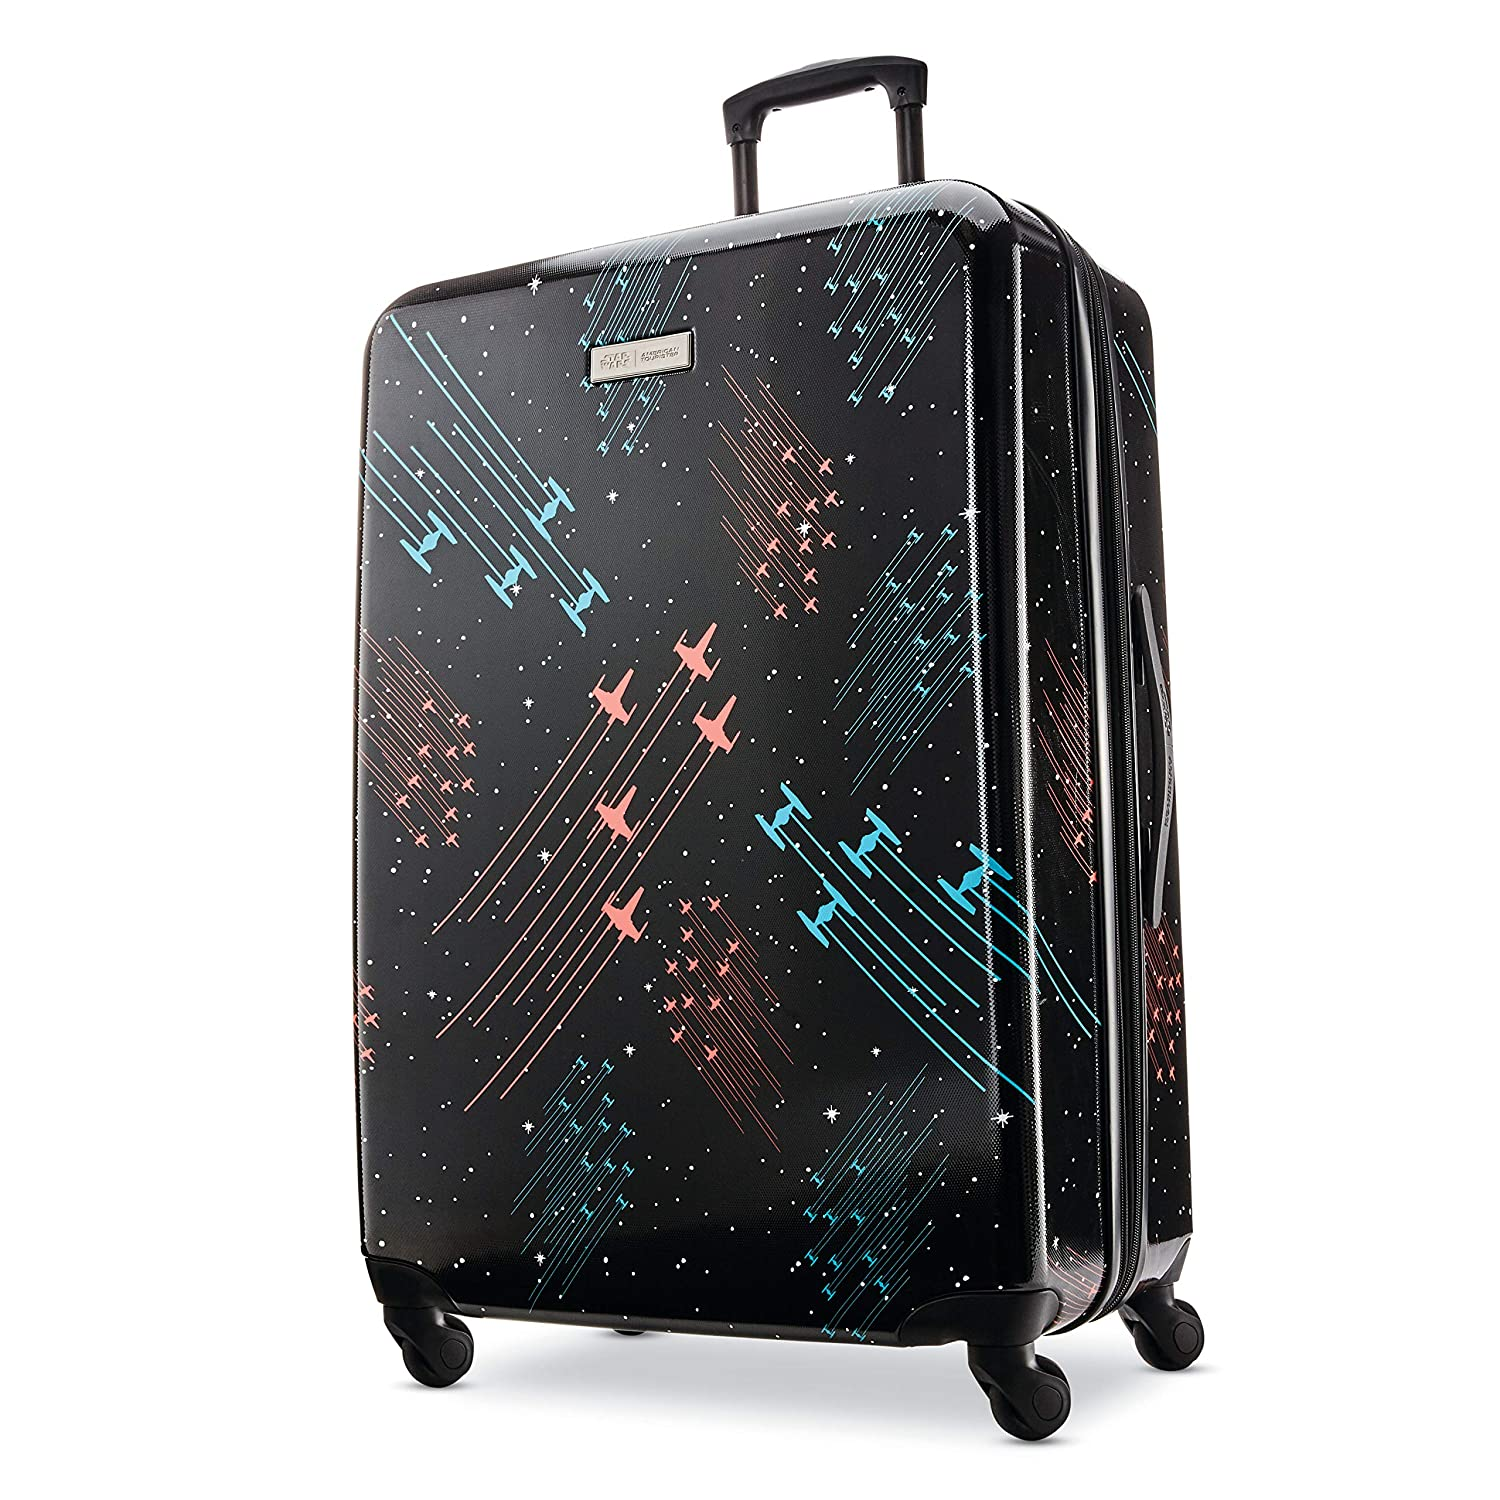 Image of American Tourister Checked-Large, Galaxy Luggage